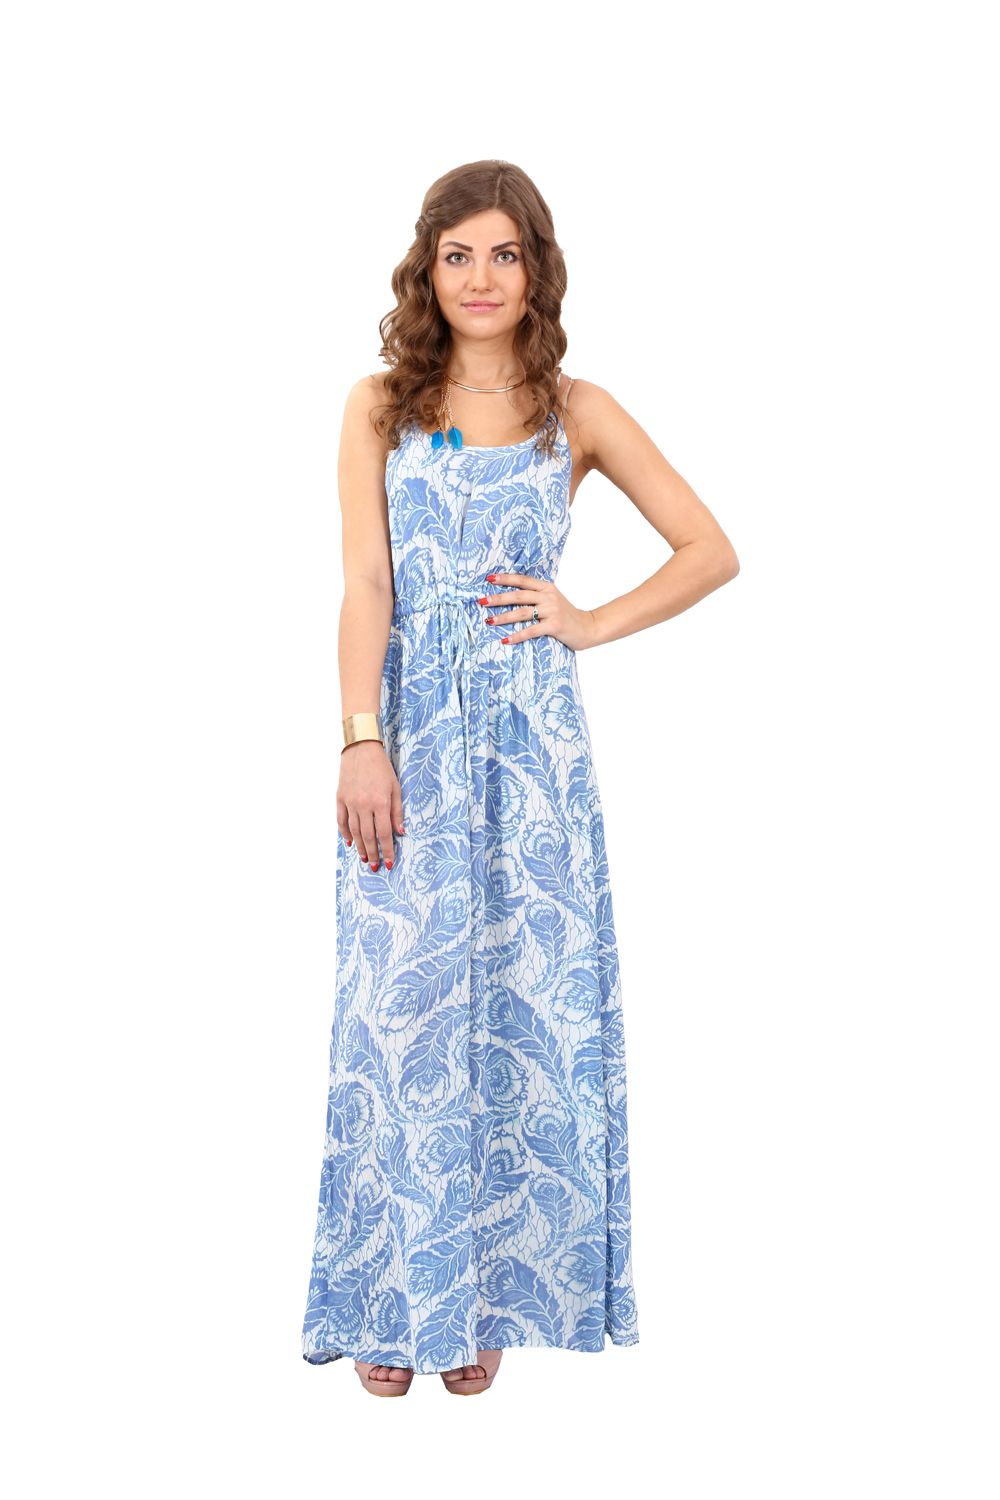 Printed bohemian longdress gowns summercollection